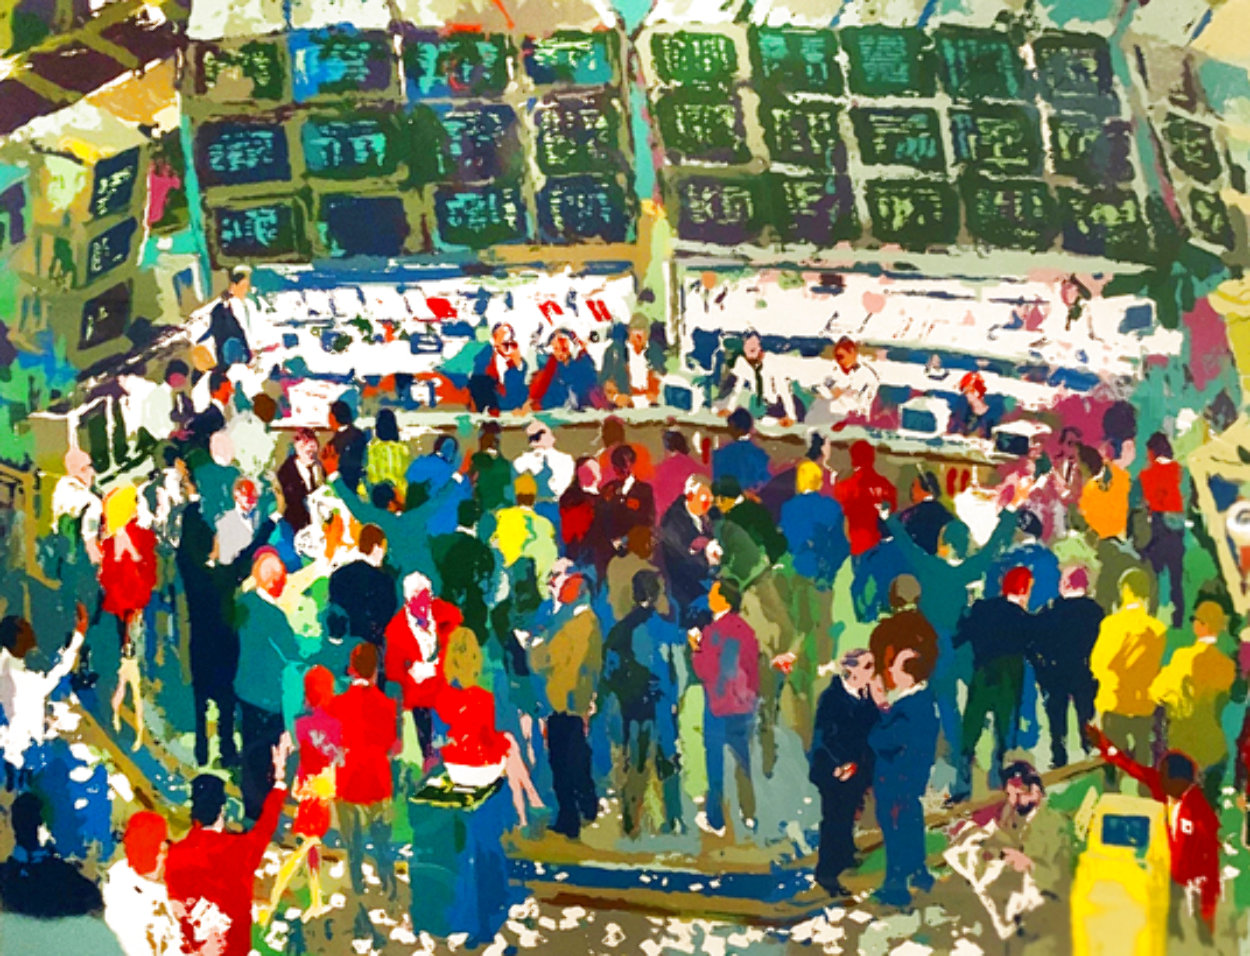 Chicago Options Limited Edition Print by LeRoy Neiman